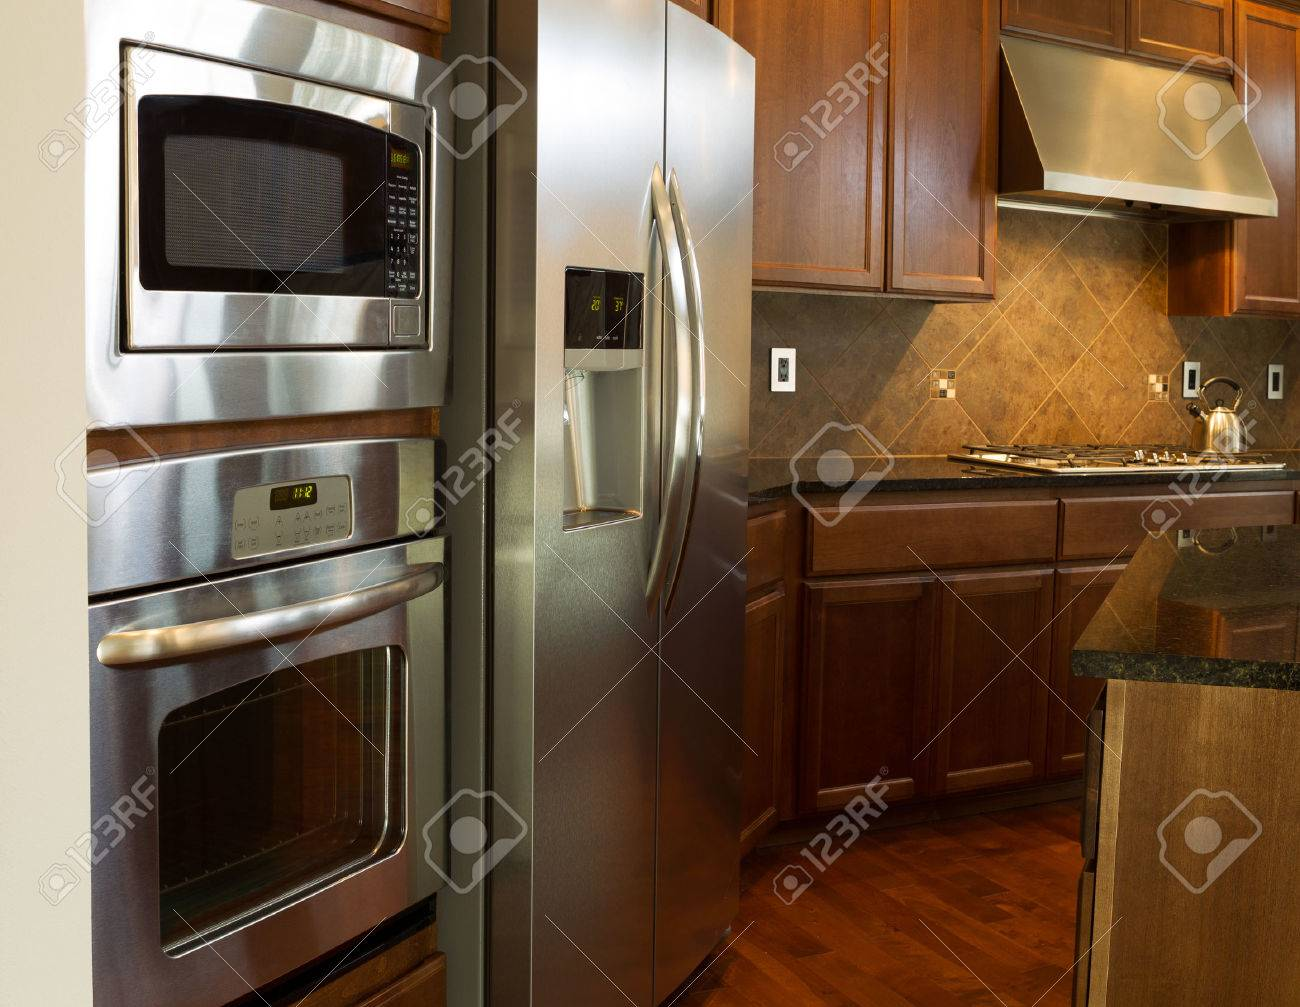 Closeup Photo Of A Stainless Steel Appliances In Modern Residential ...